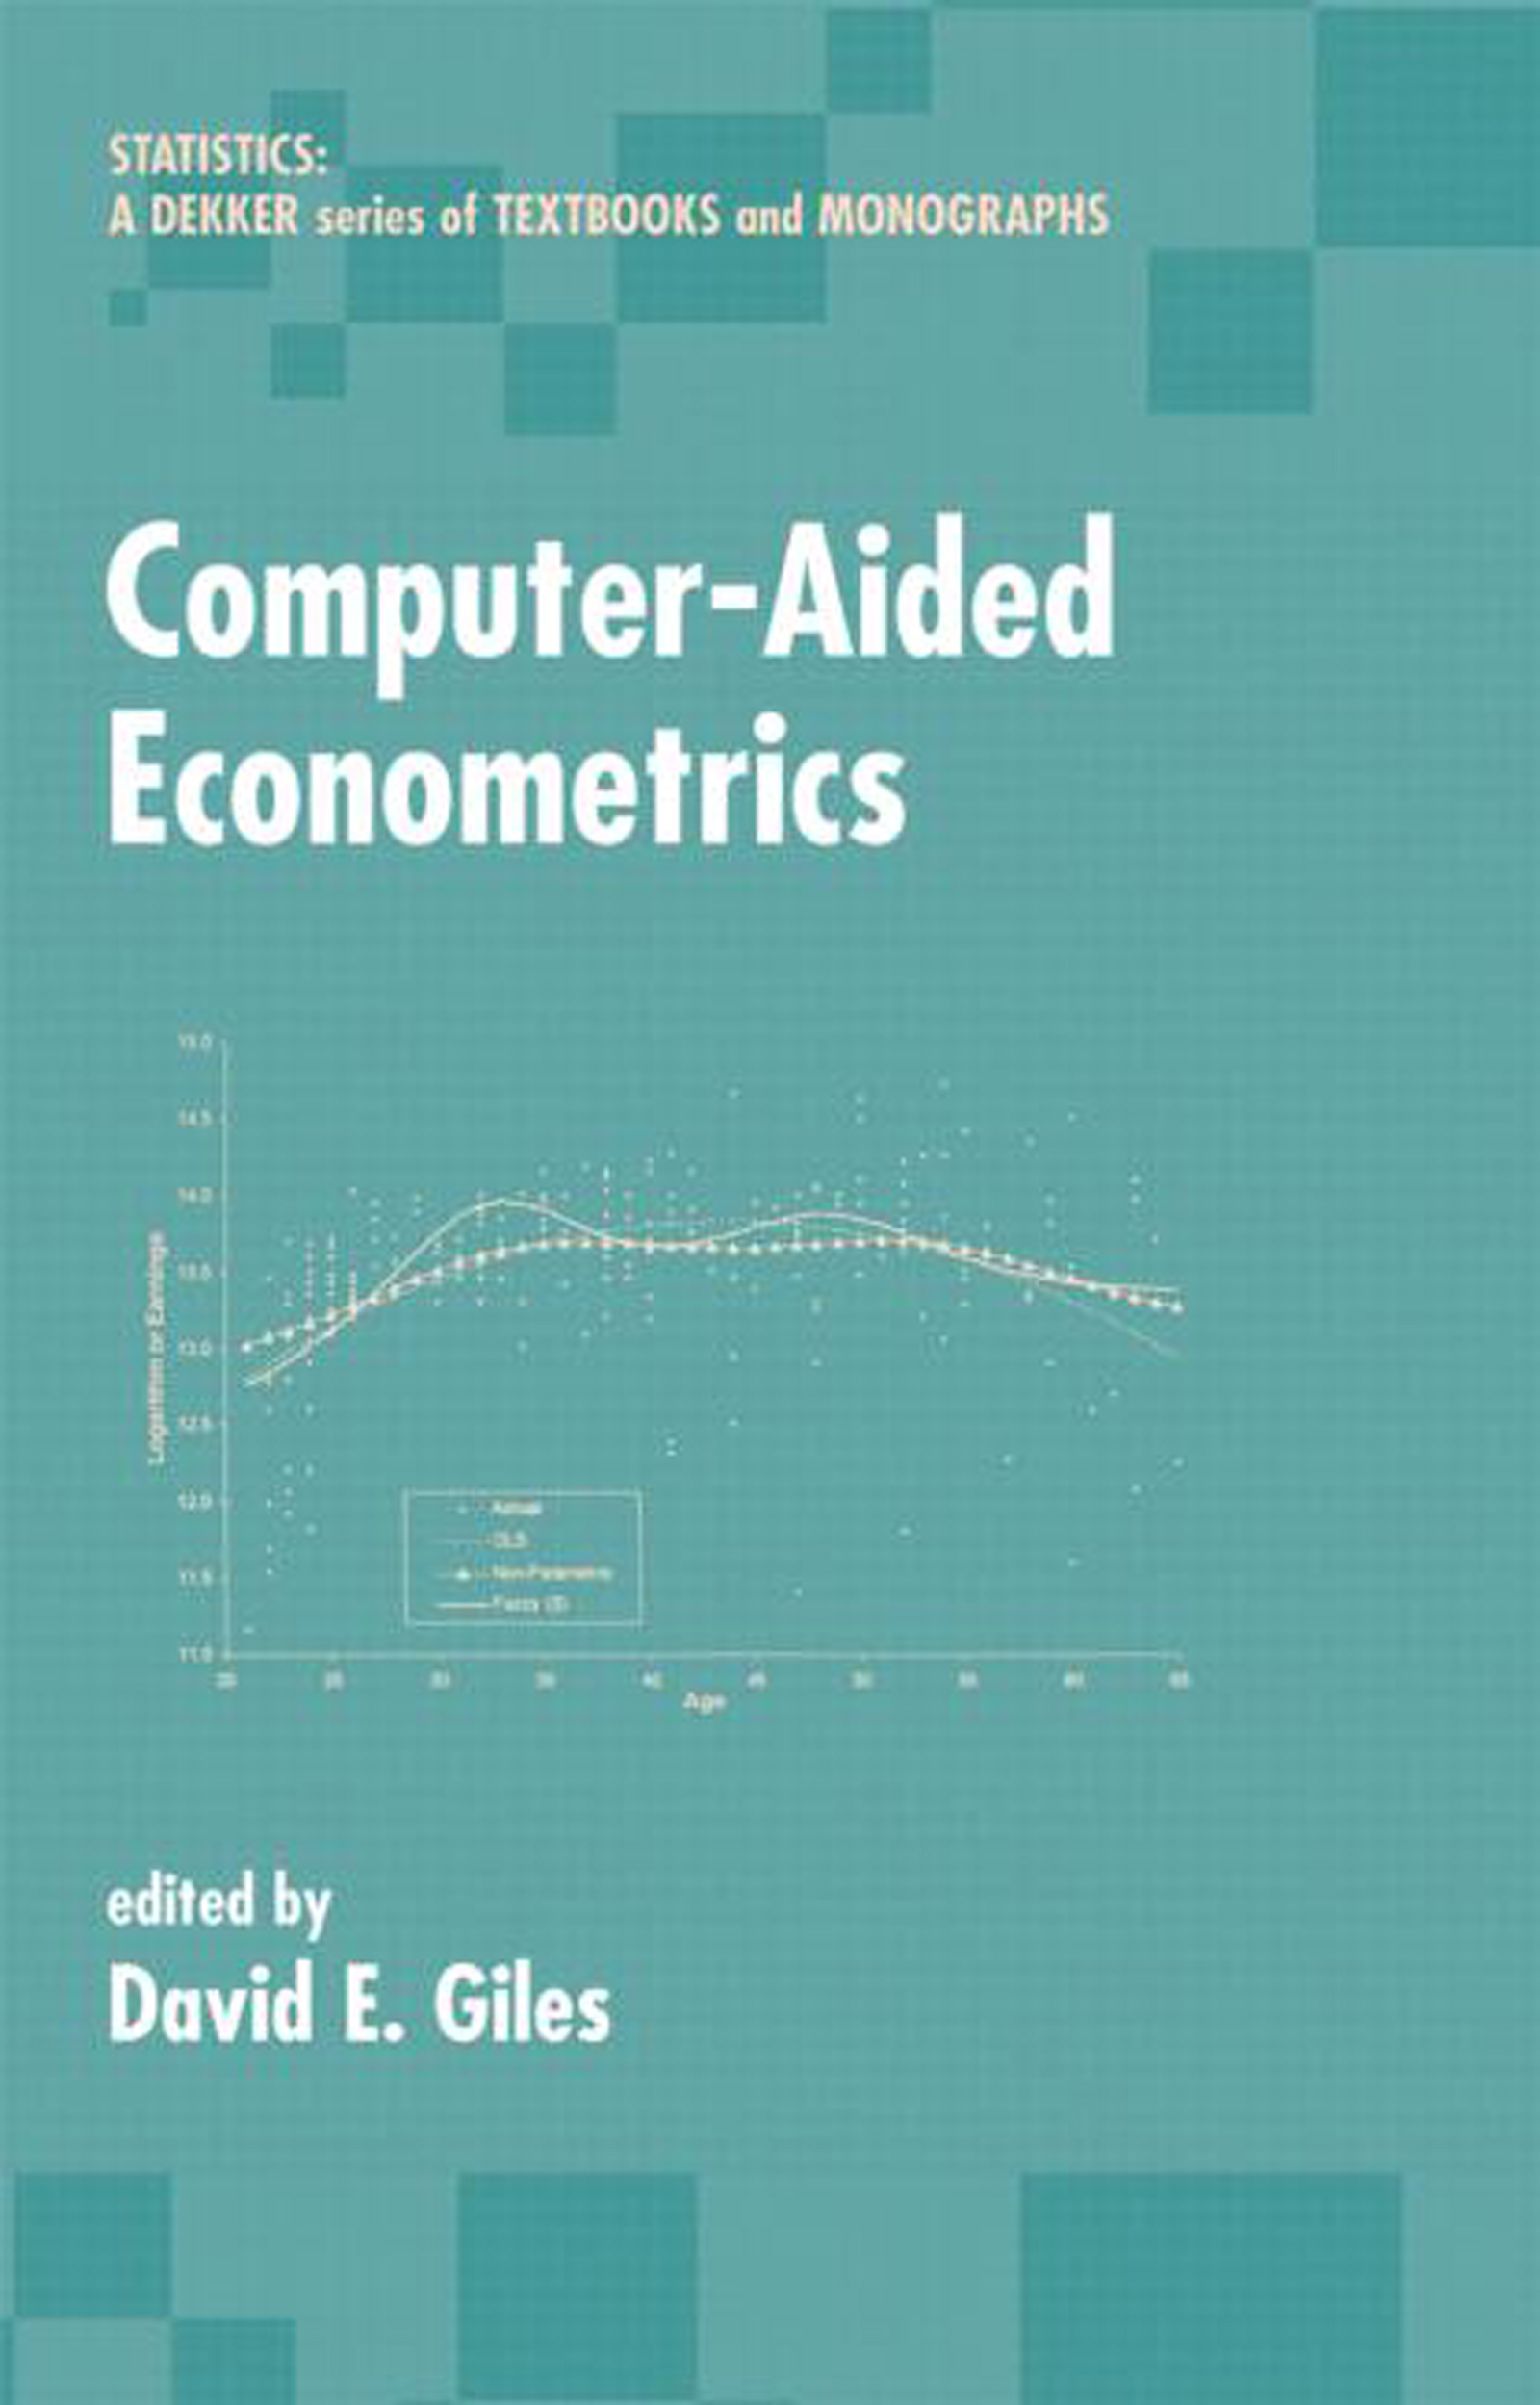 Estimating and Testing Fundamental Stock Prices: Evidence from Simulated Economies